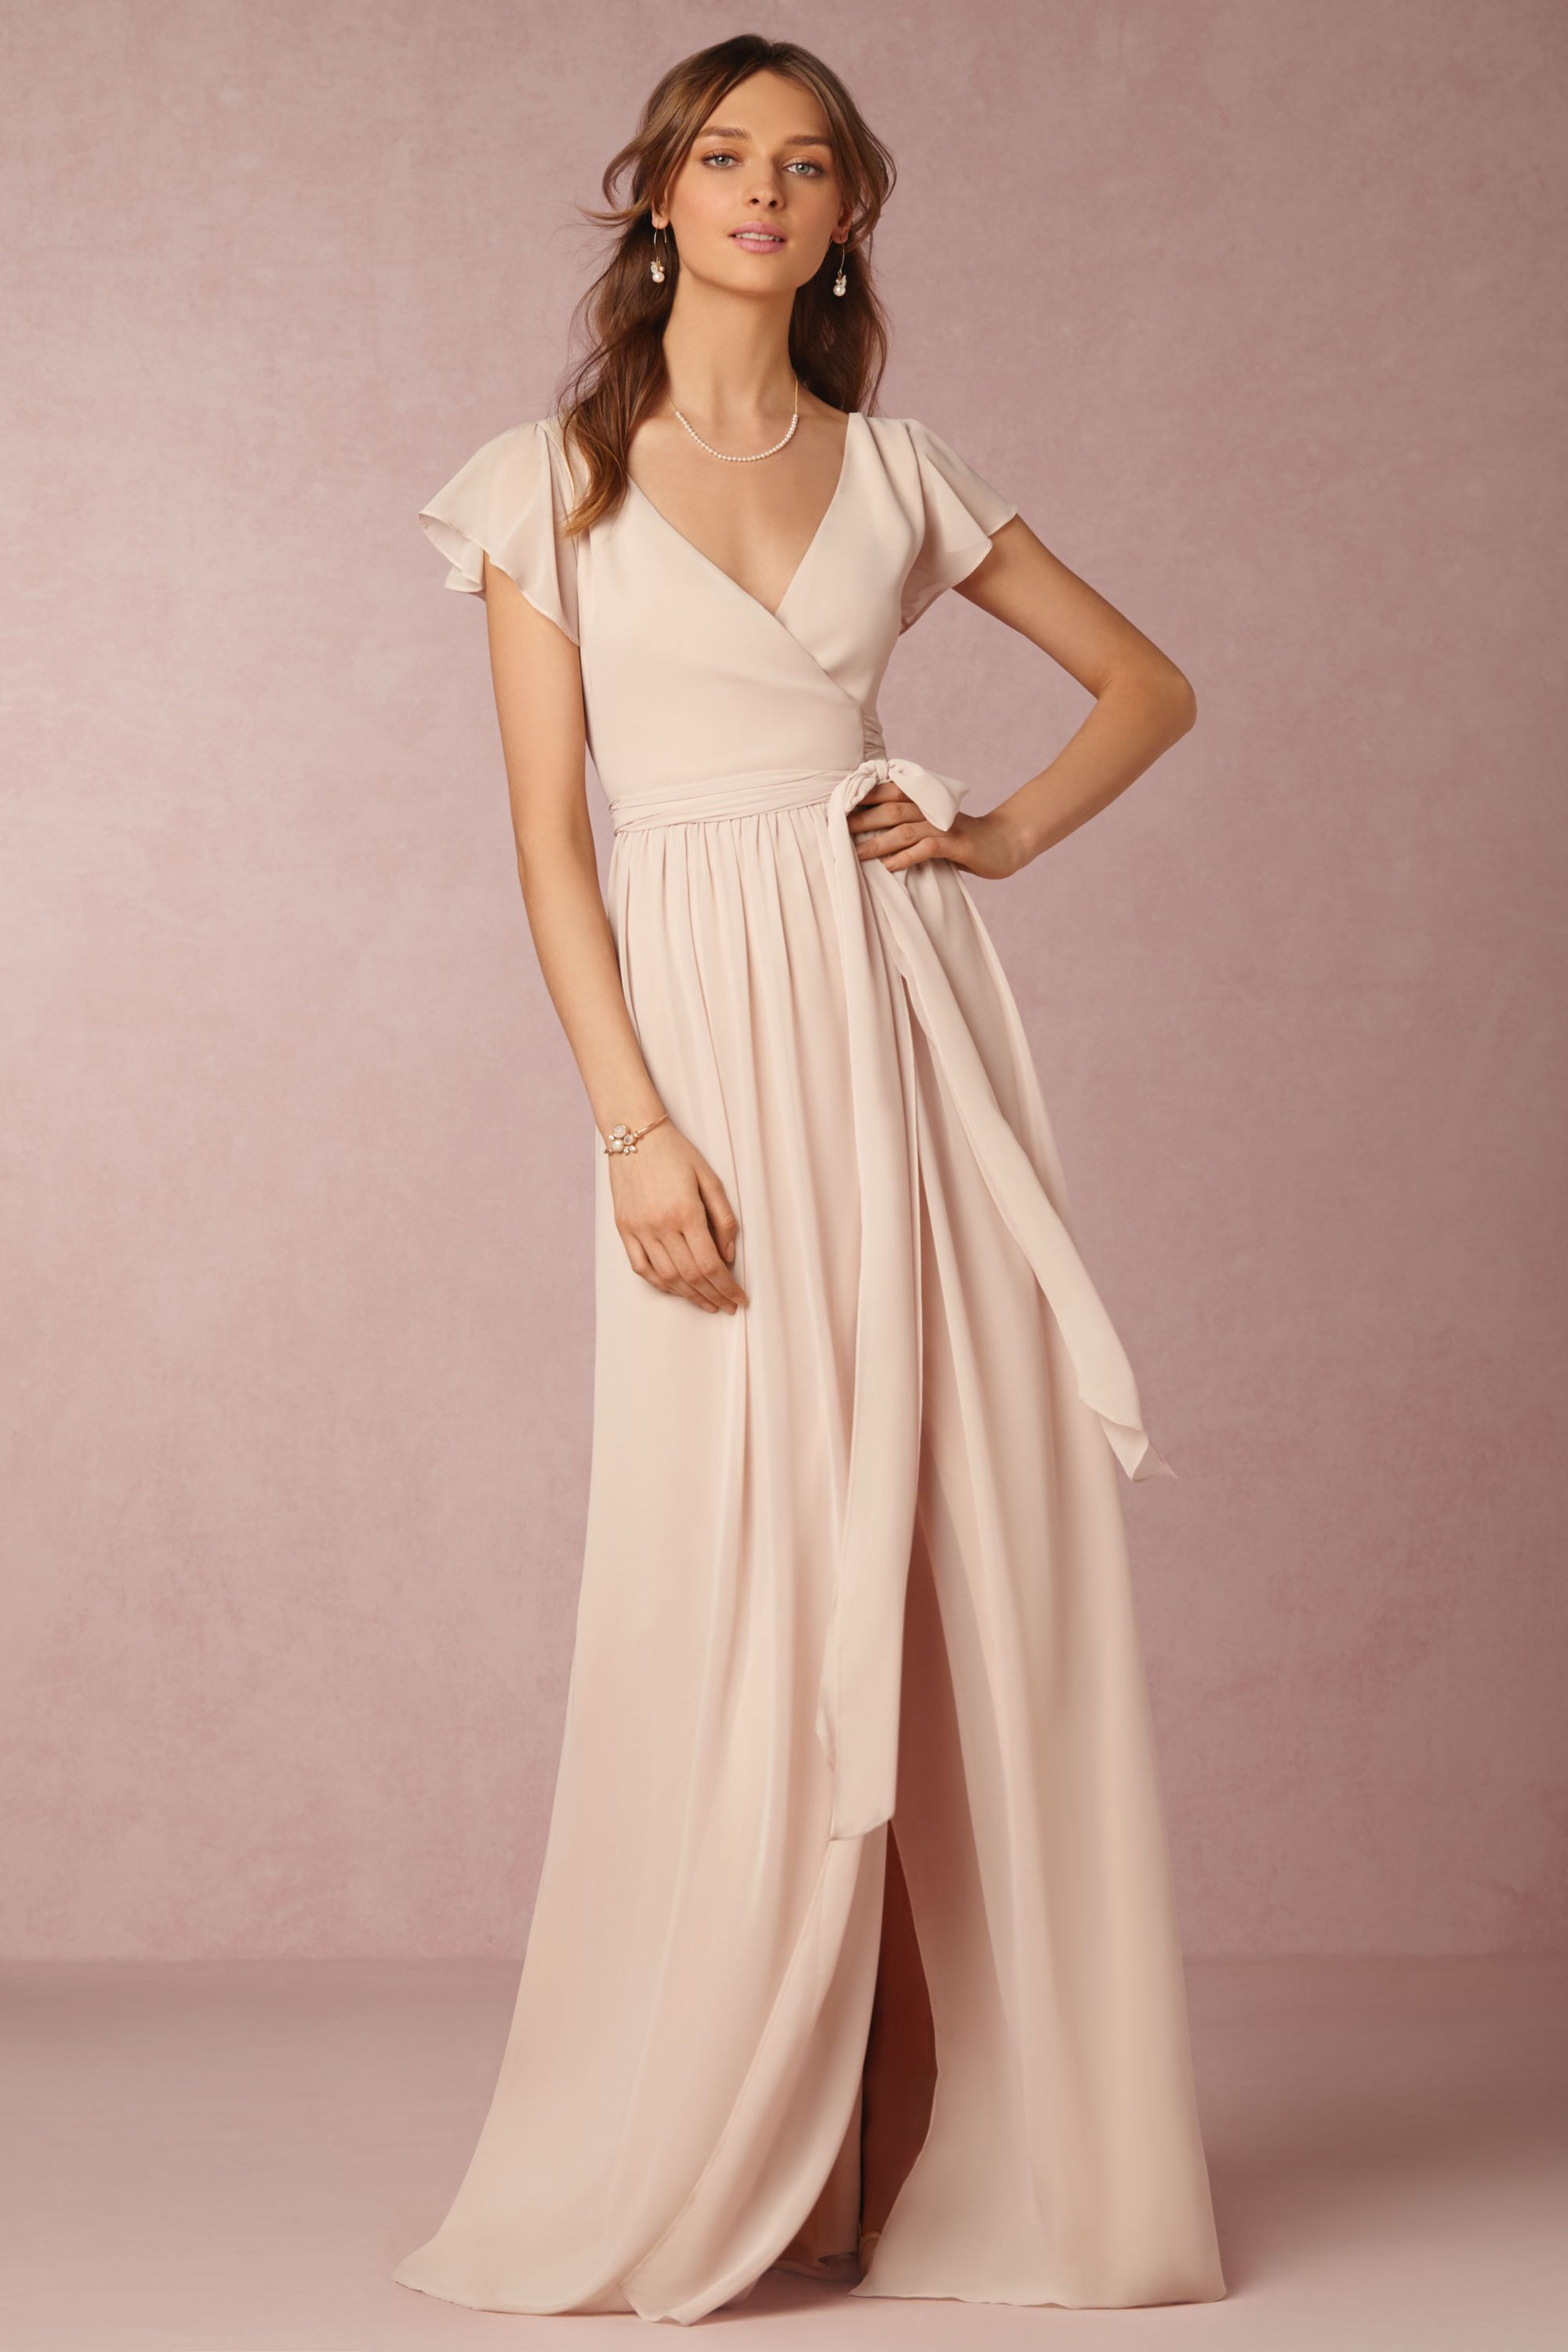 Bridesmaid dresses for spring weddings | via https://emmalinebride.com/bridesmaid/bridesmaid-dresses-spring-weddings/